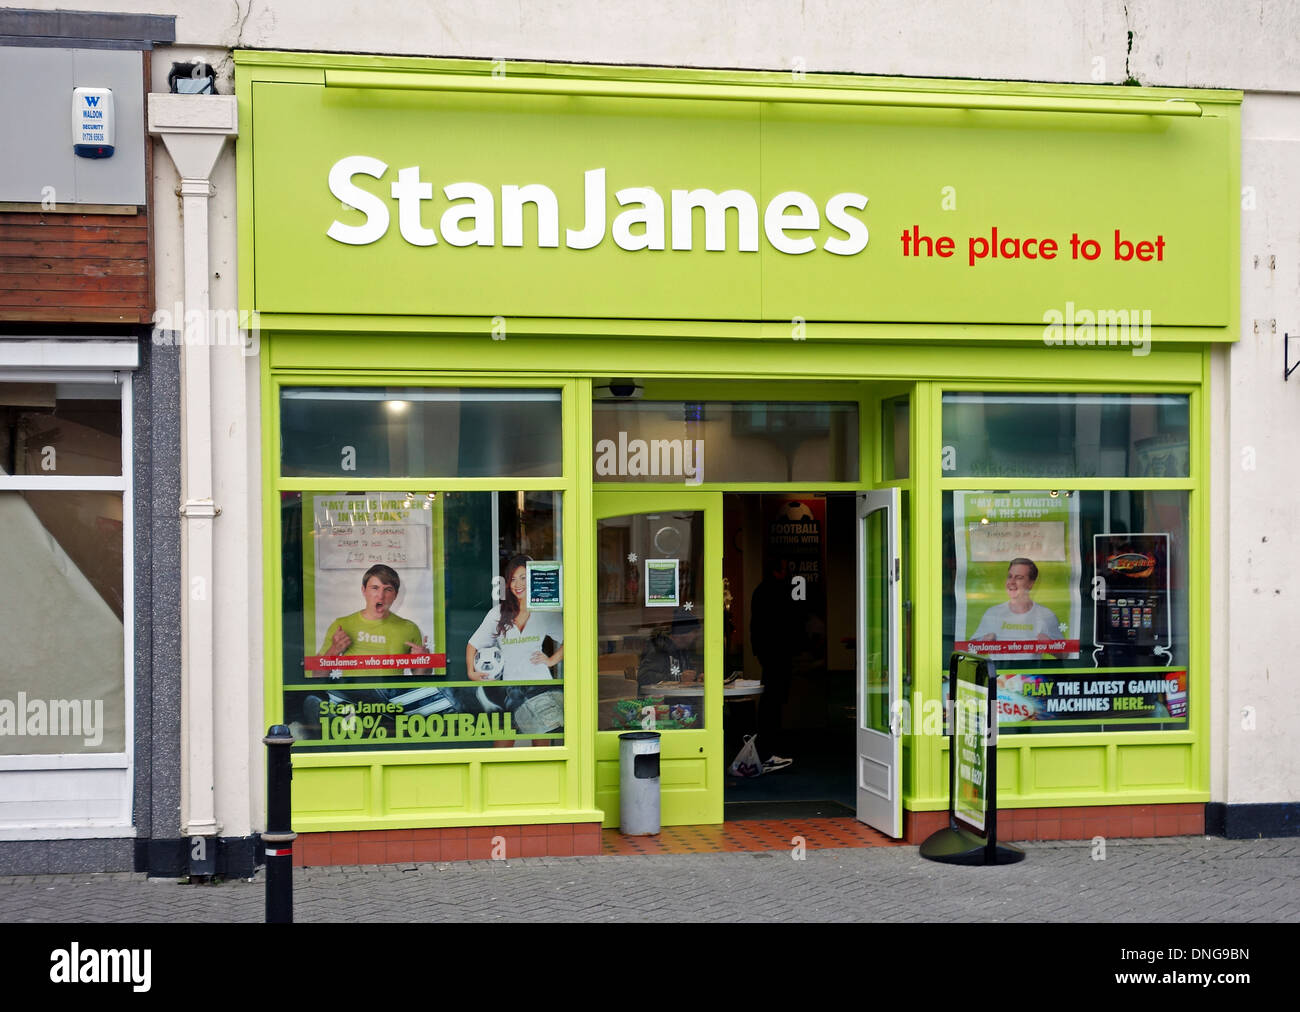 Stan james betting over under betting hockey overs